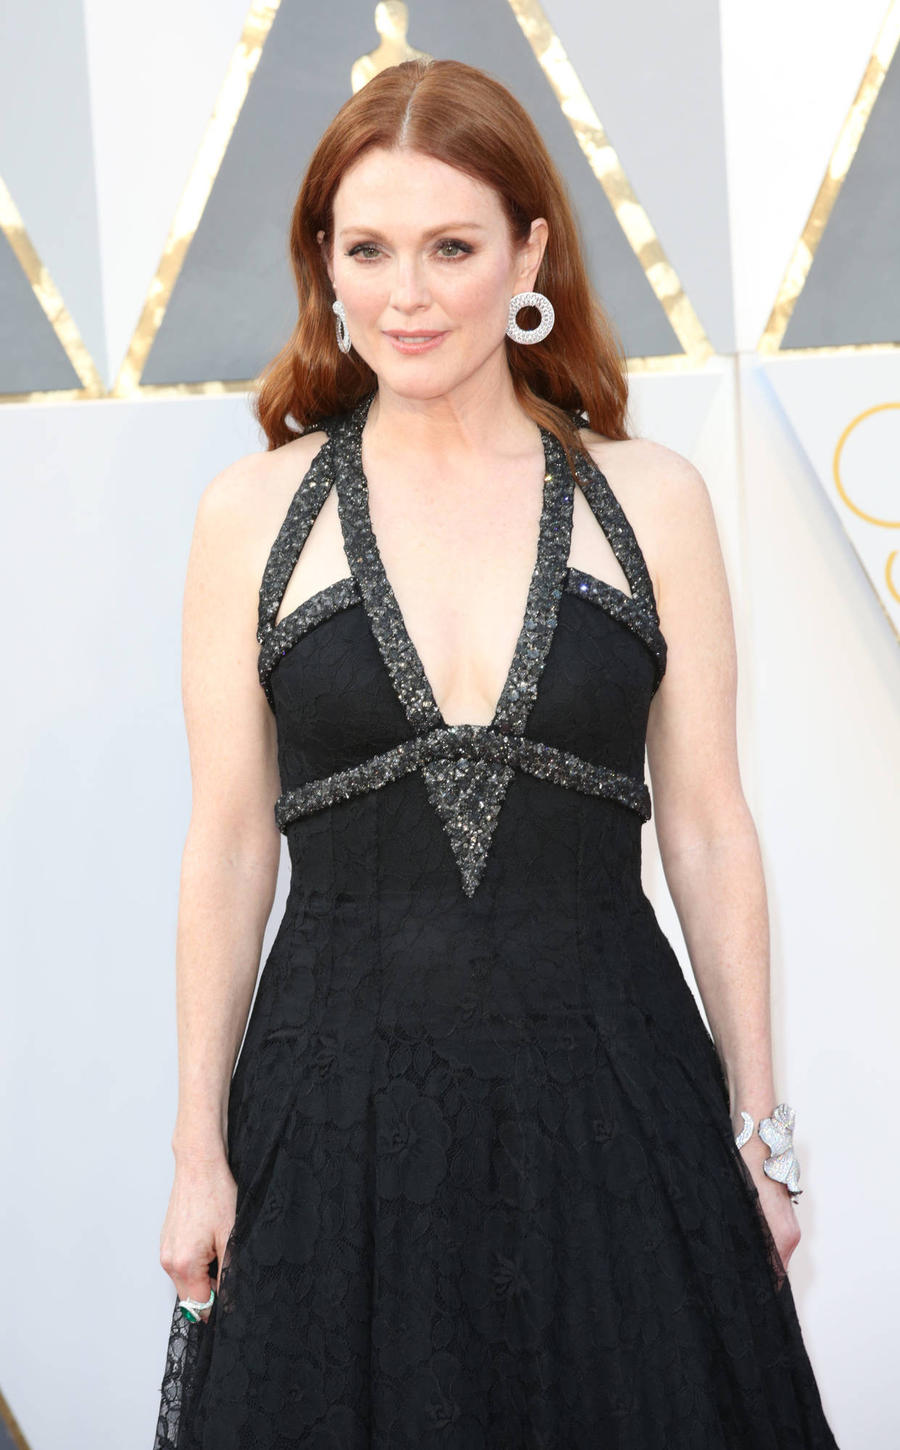 Julianne Moore Issues Call To Action On Gun Control